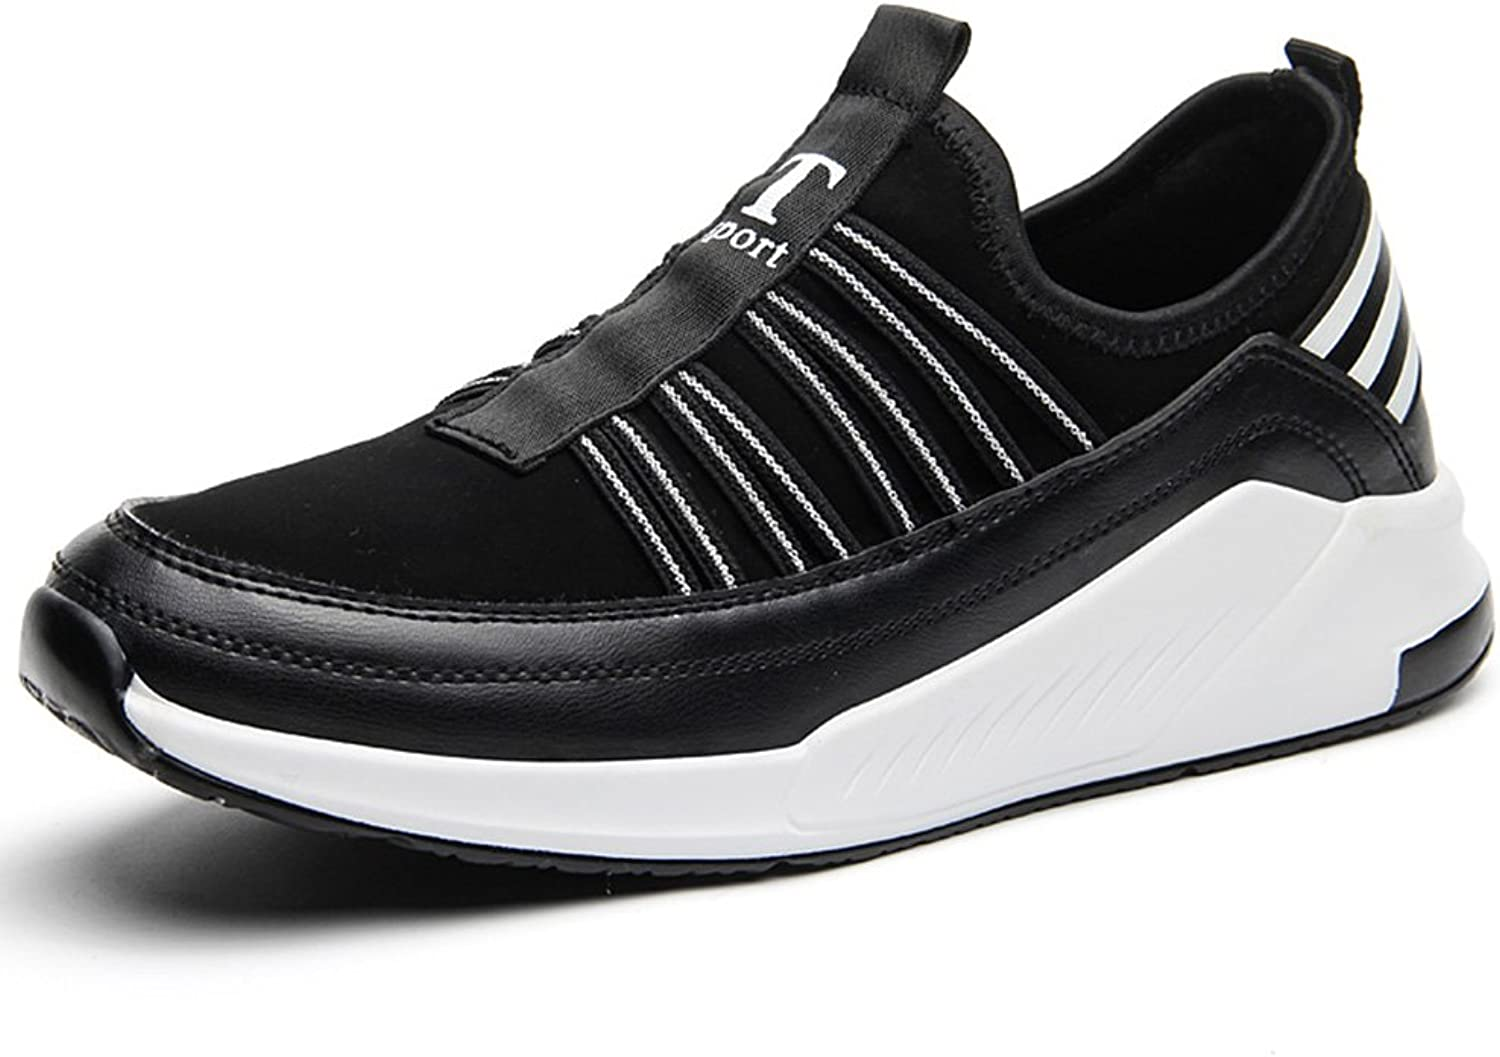 Men's shoes Feifei Spring and Autumn Movement Fashion Leisure Breathable Running shoes 2 Colours (color   Black, Size   EU39 UK6 CN39)